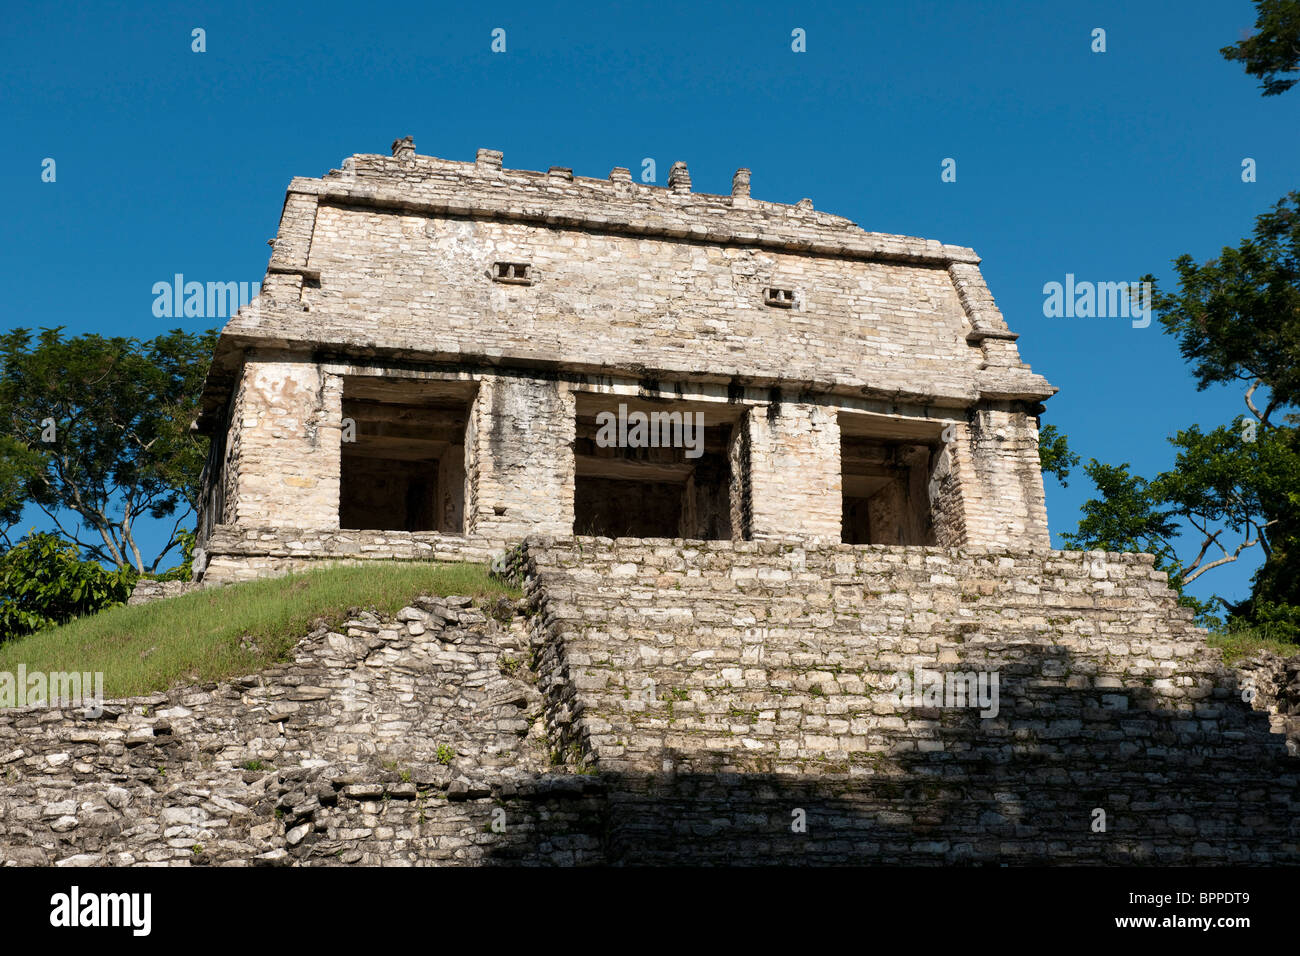 Temple of the sun, Maya ruins of Palenque, Mexico - Stock Image